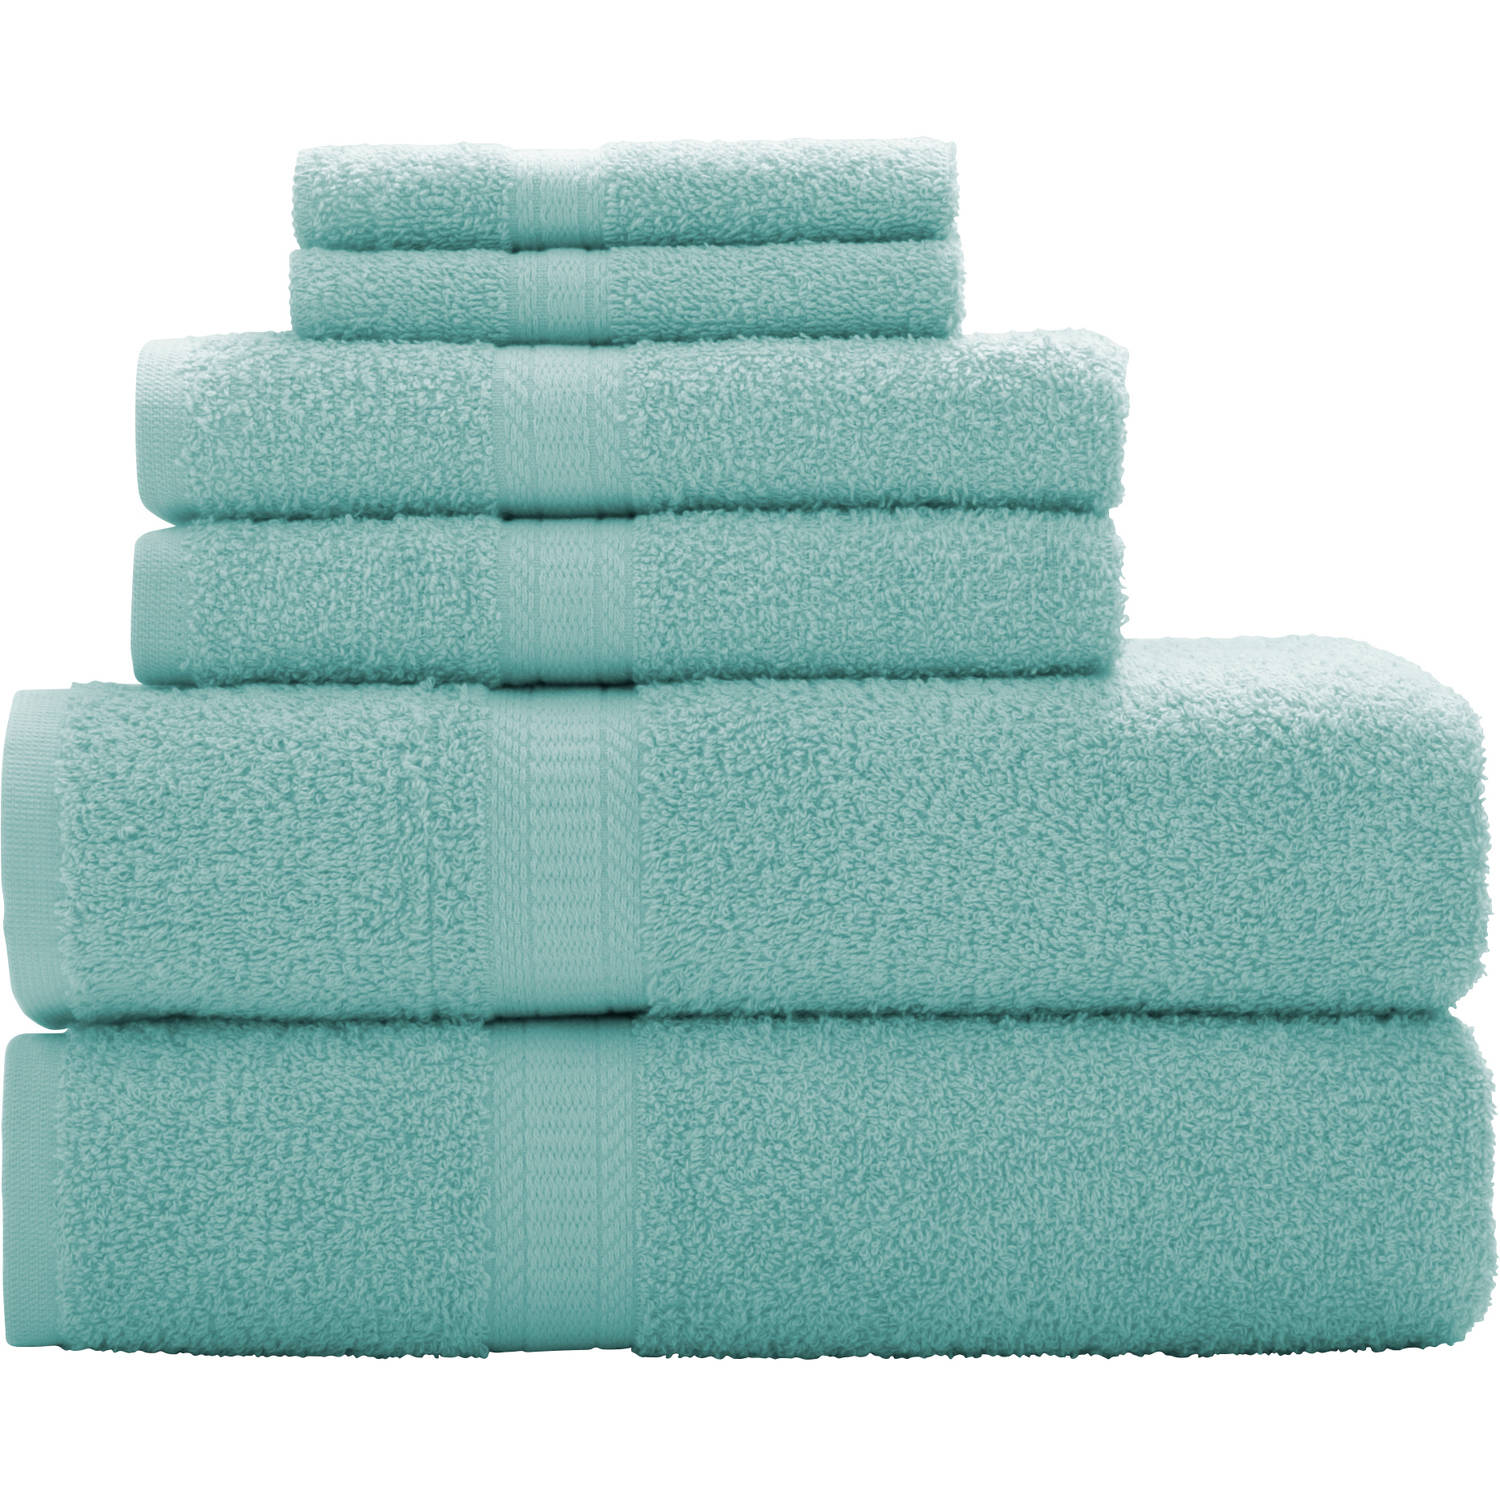 Mainstays Basic 6-Piece Towel Set